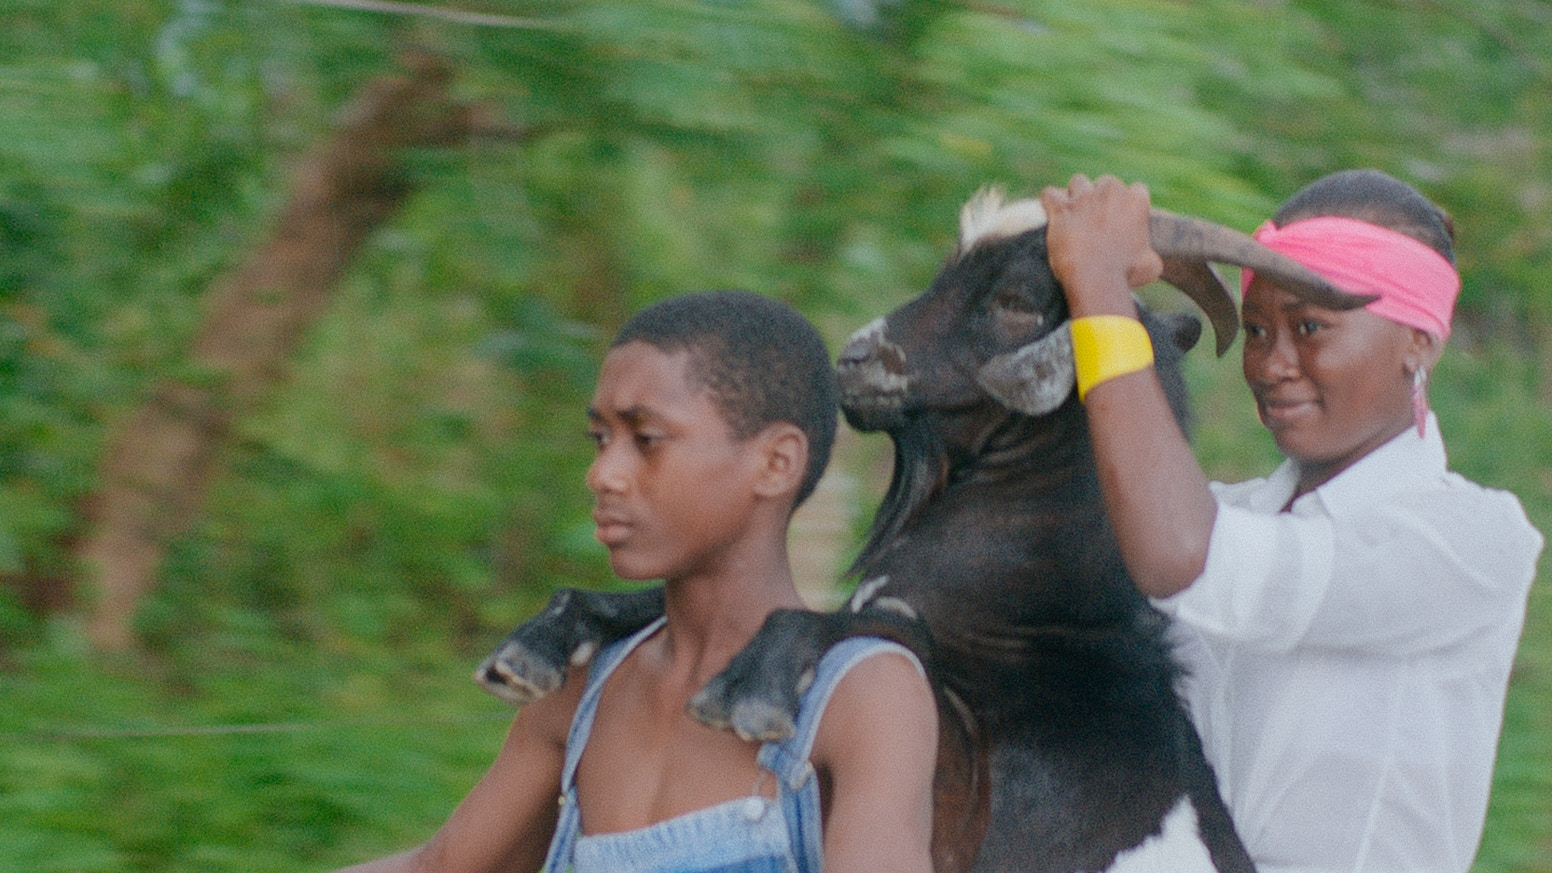 A coming-of-age film about two incompatible siblings and a dead goat.